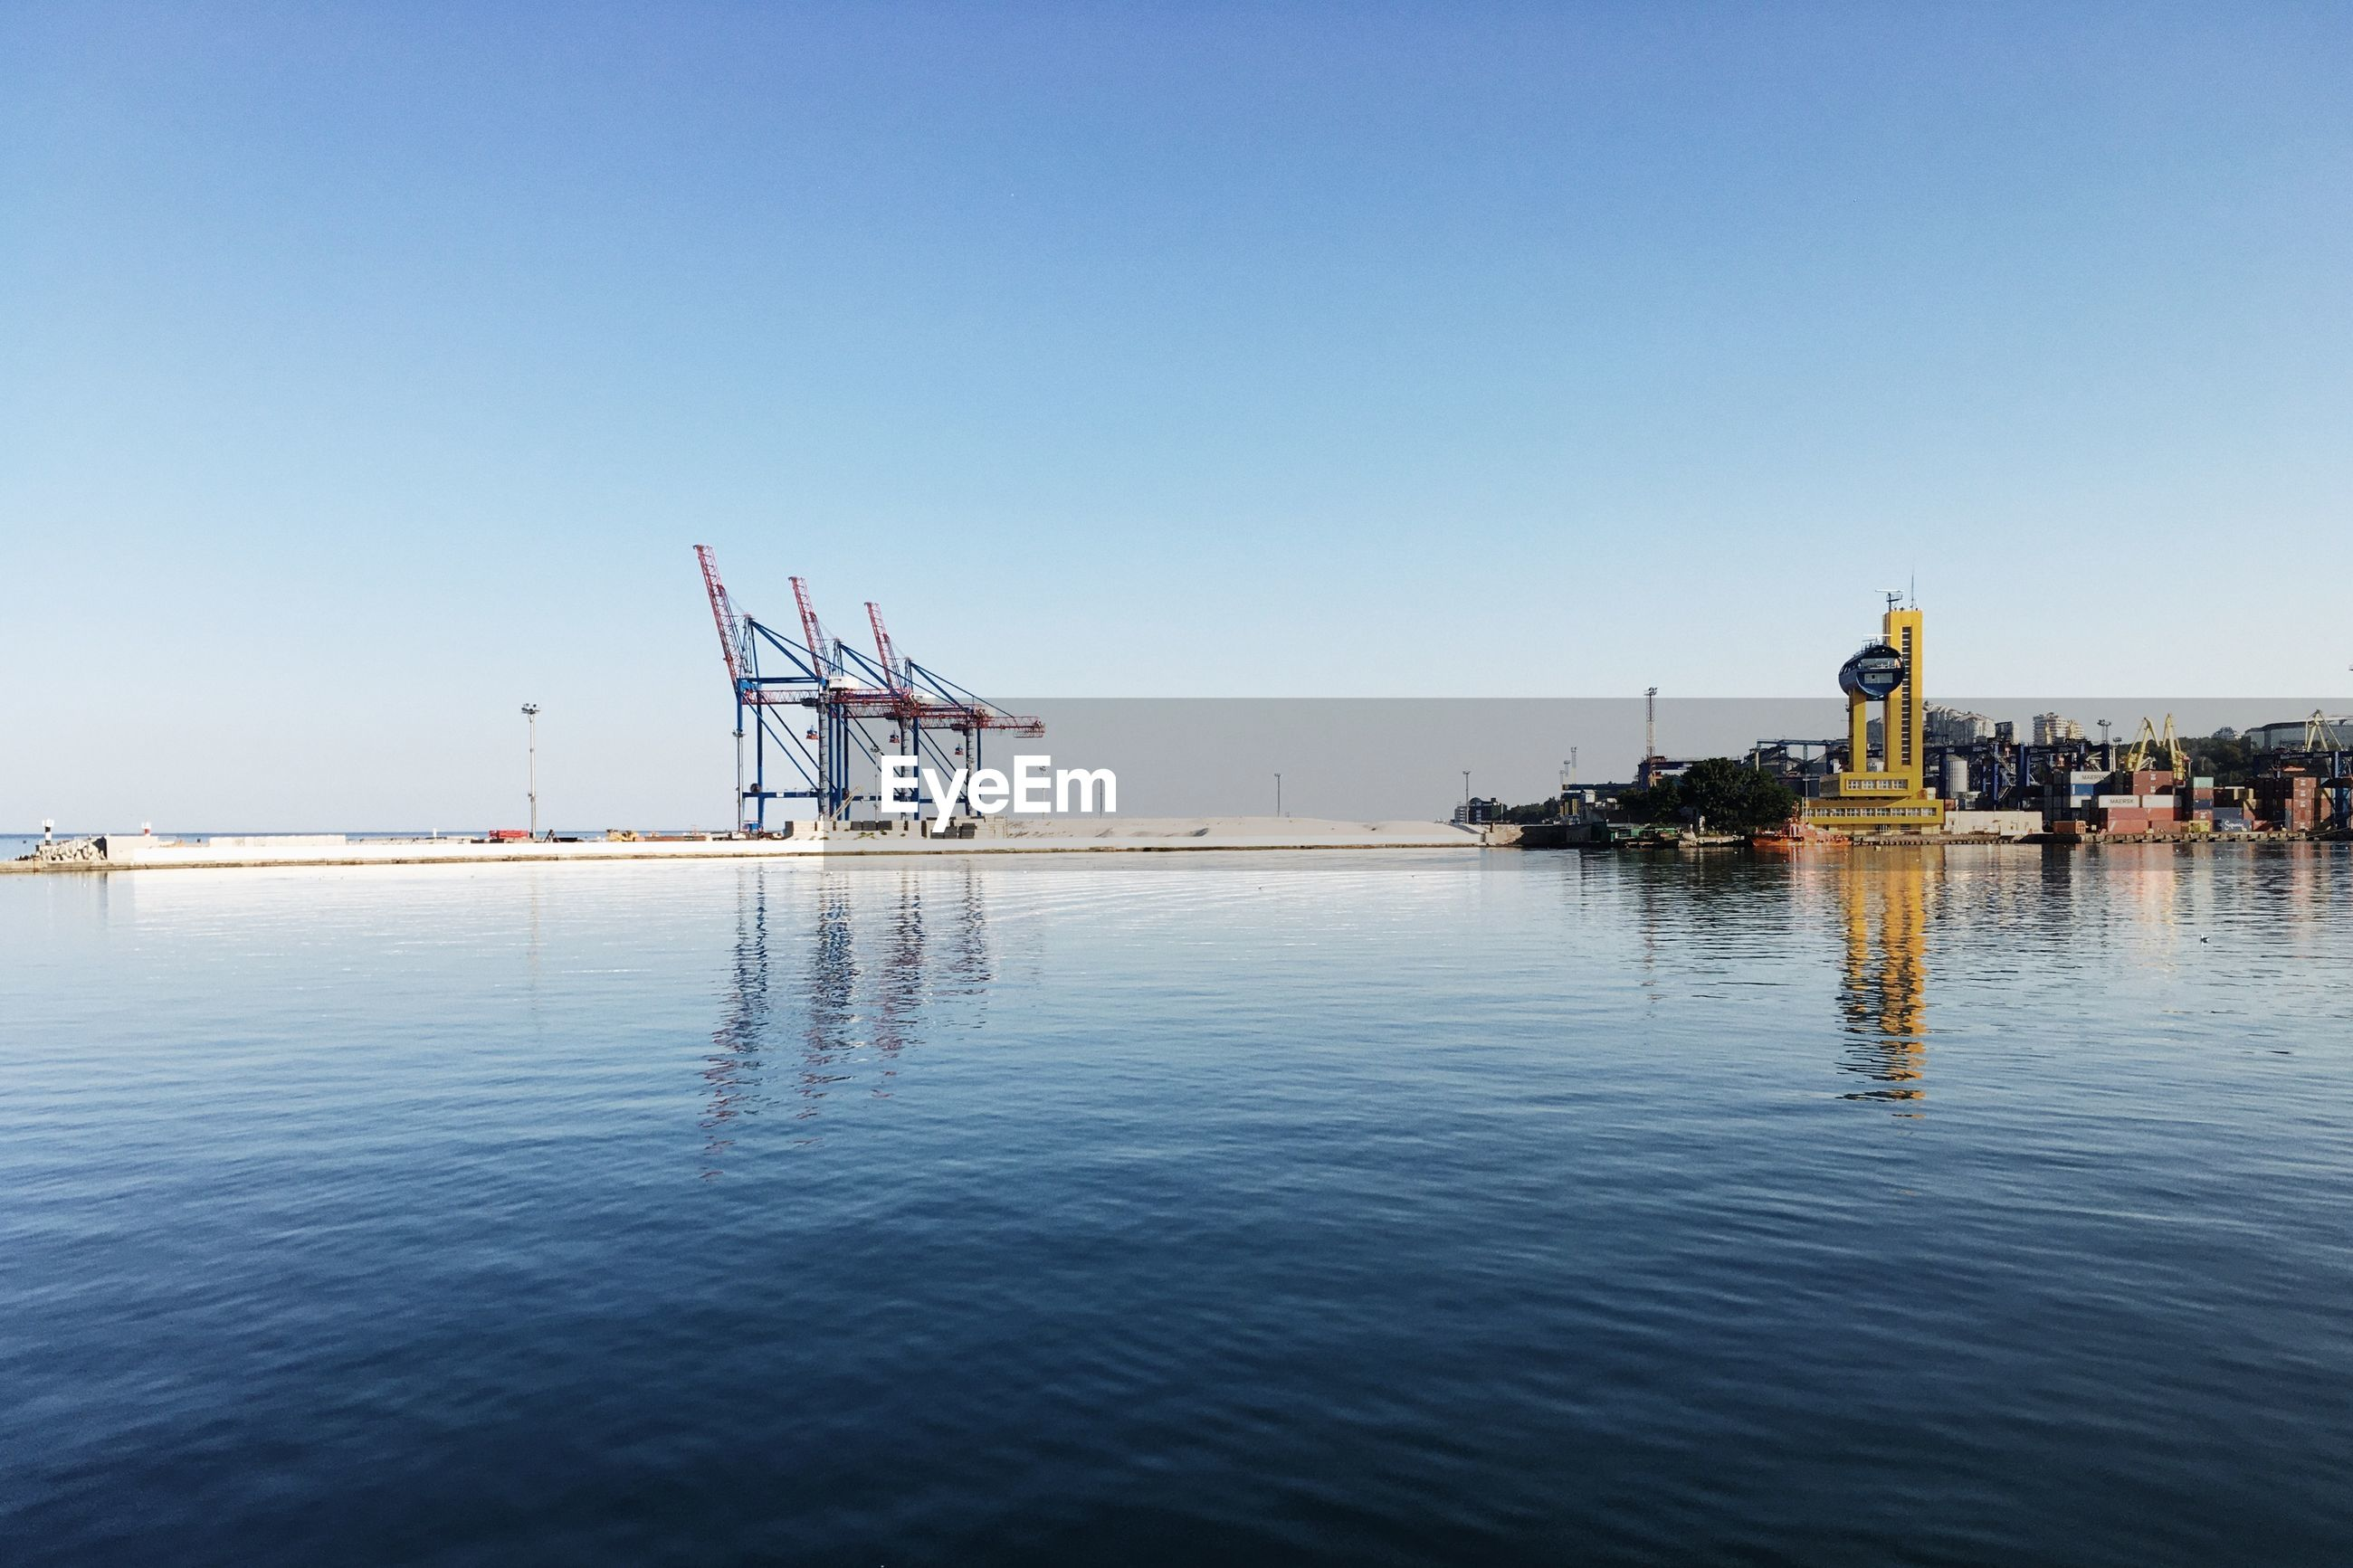 COMMERCIAL DOCK AGAINST CLEAR SKY